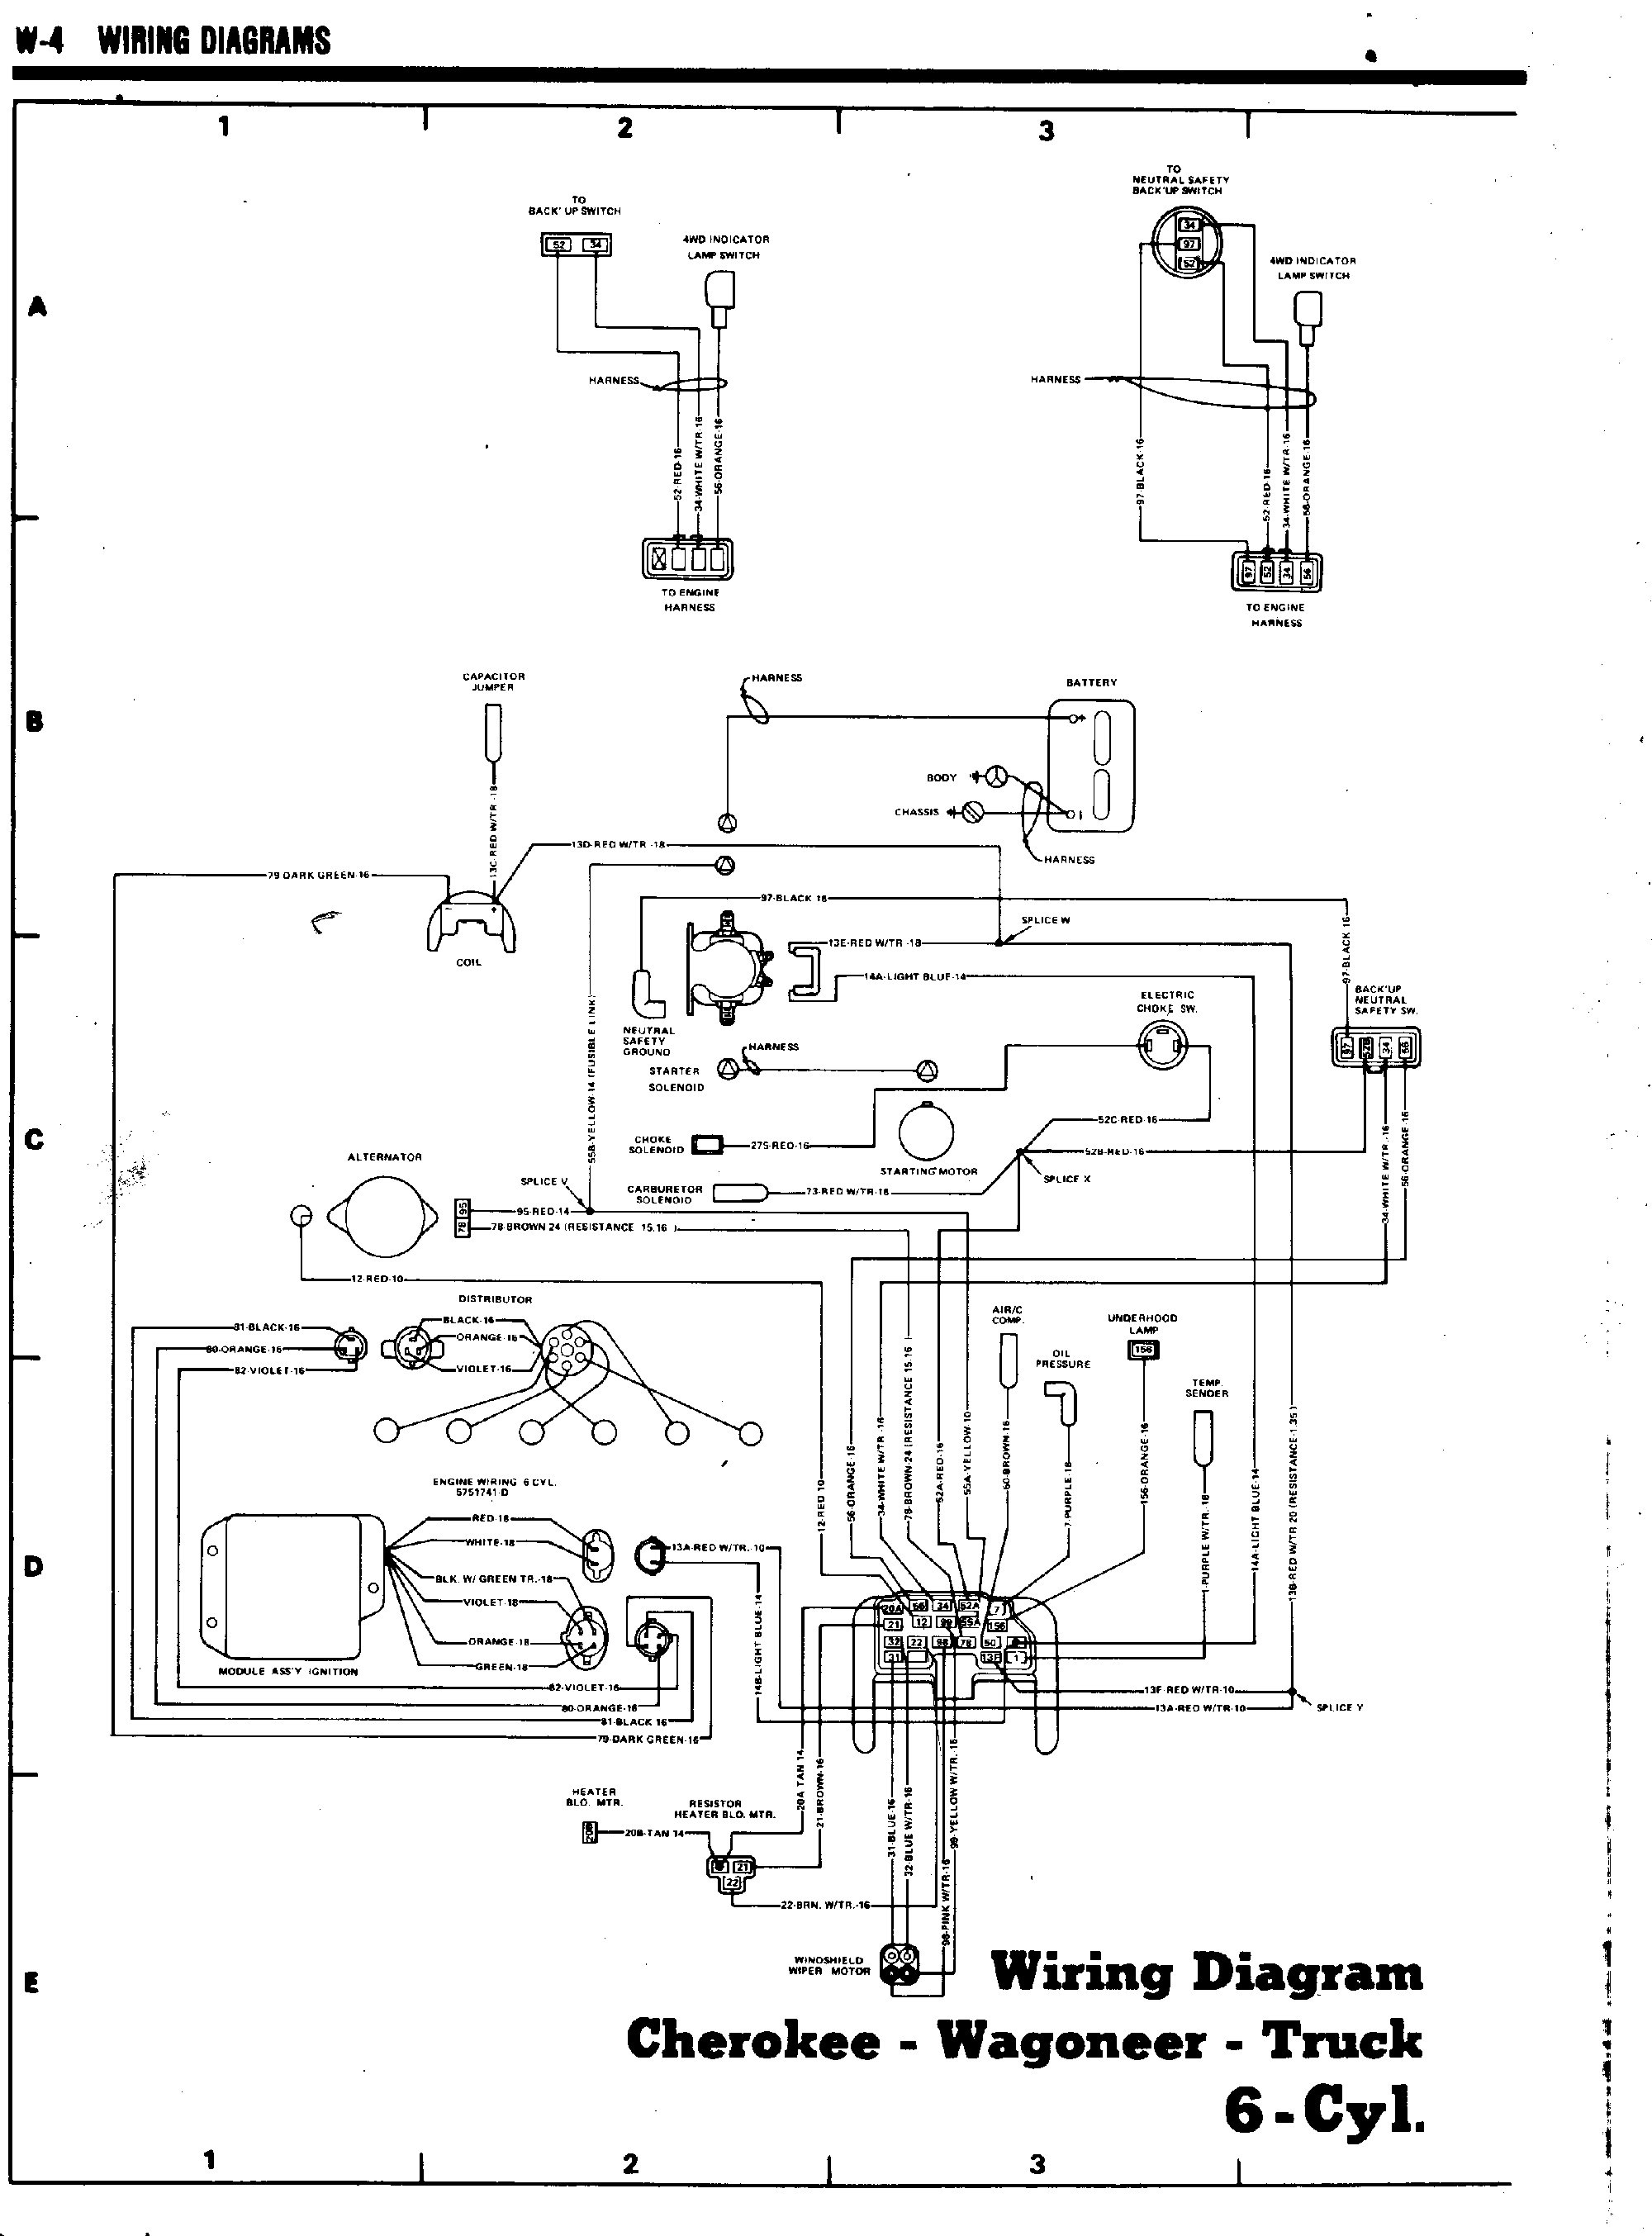 [WRG-9829] 1983 Cj7 Wiring Diagram Under Hood